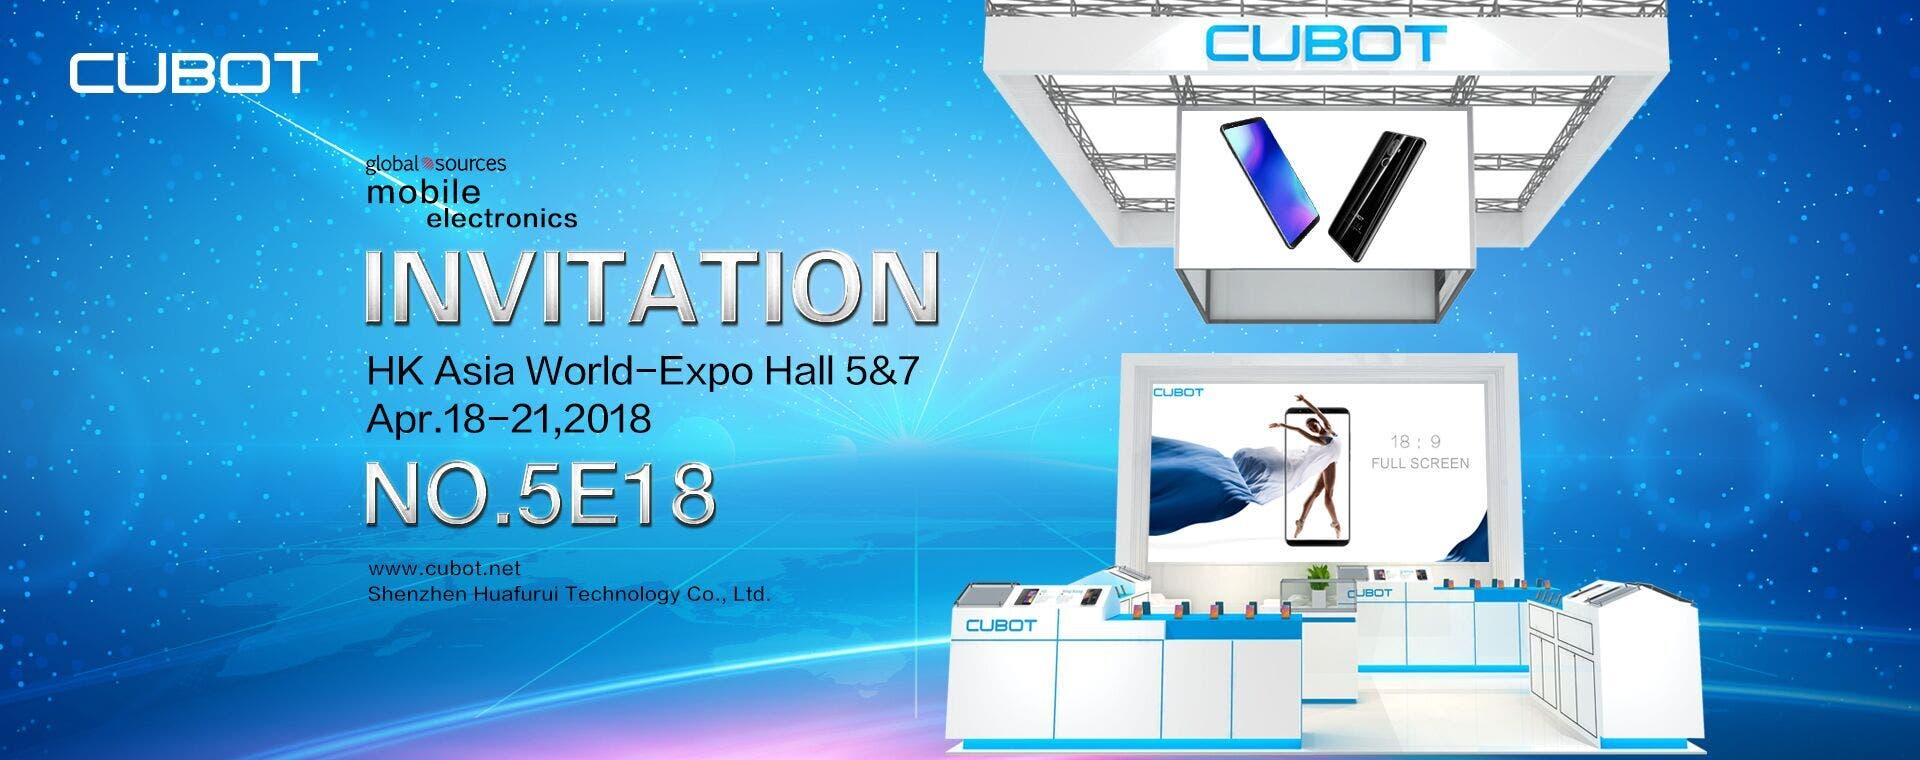 Cubot to Attend Global Sources Electronics Show